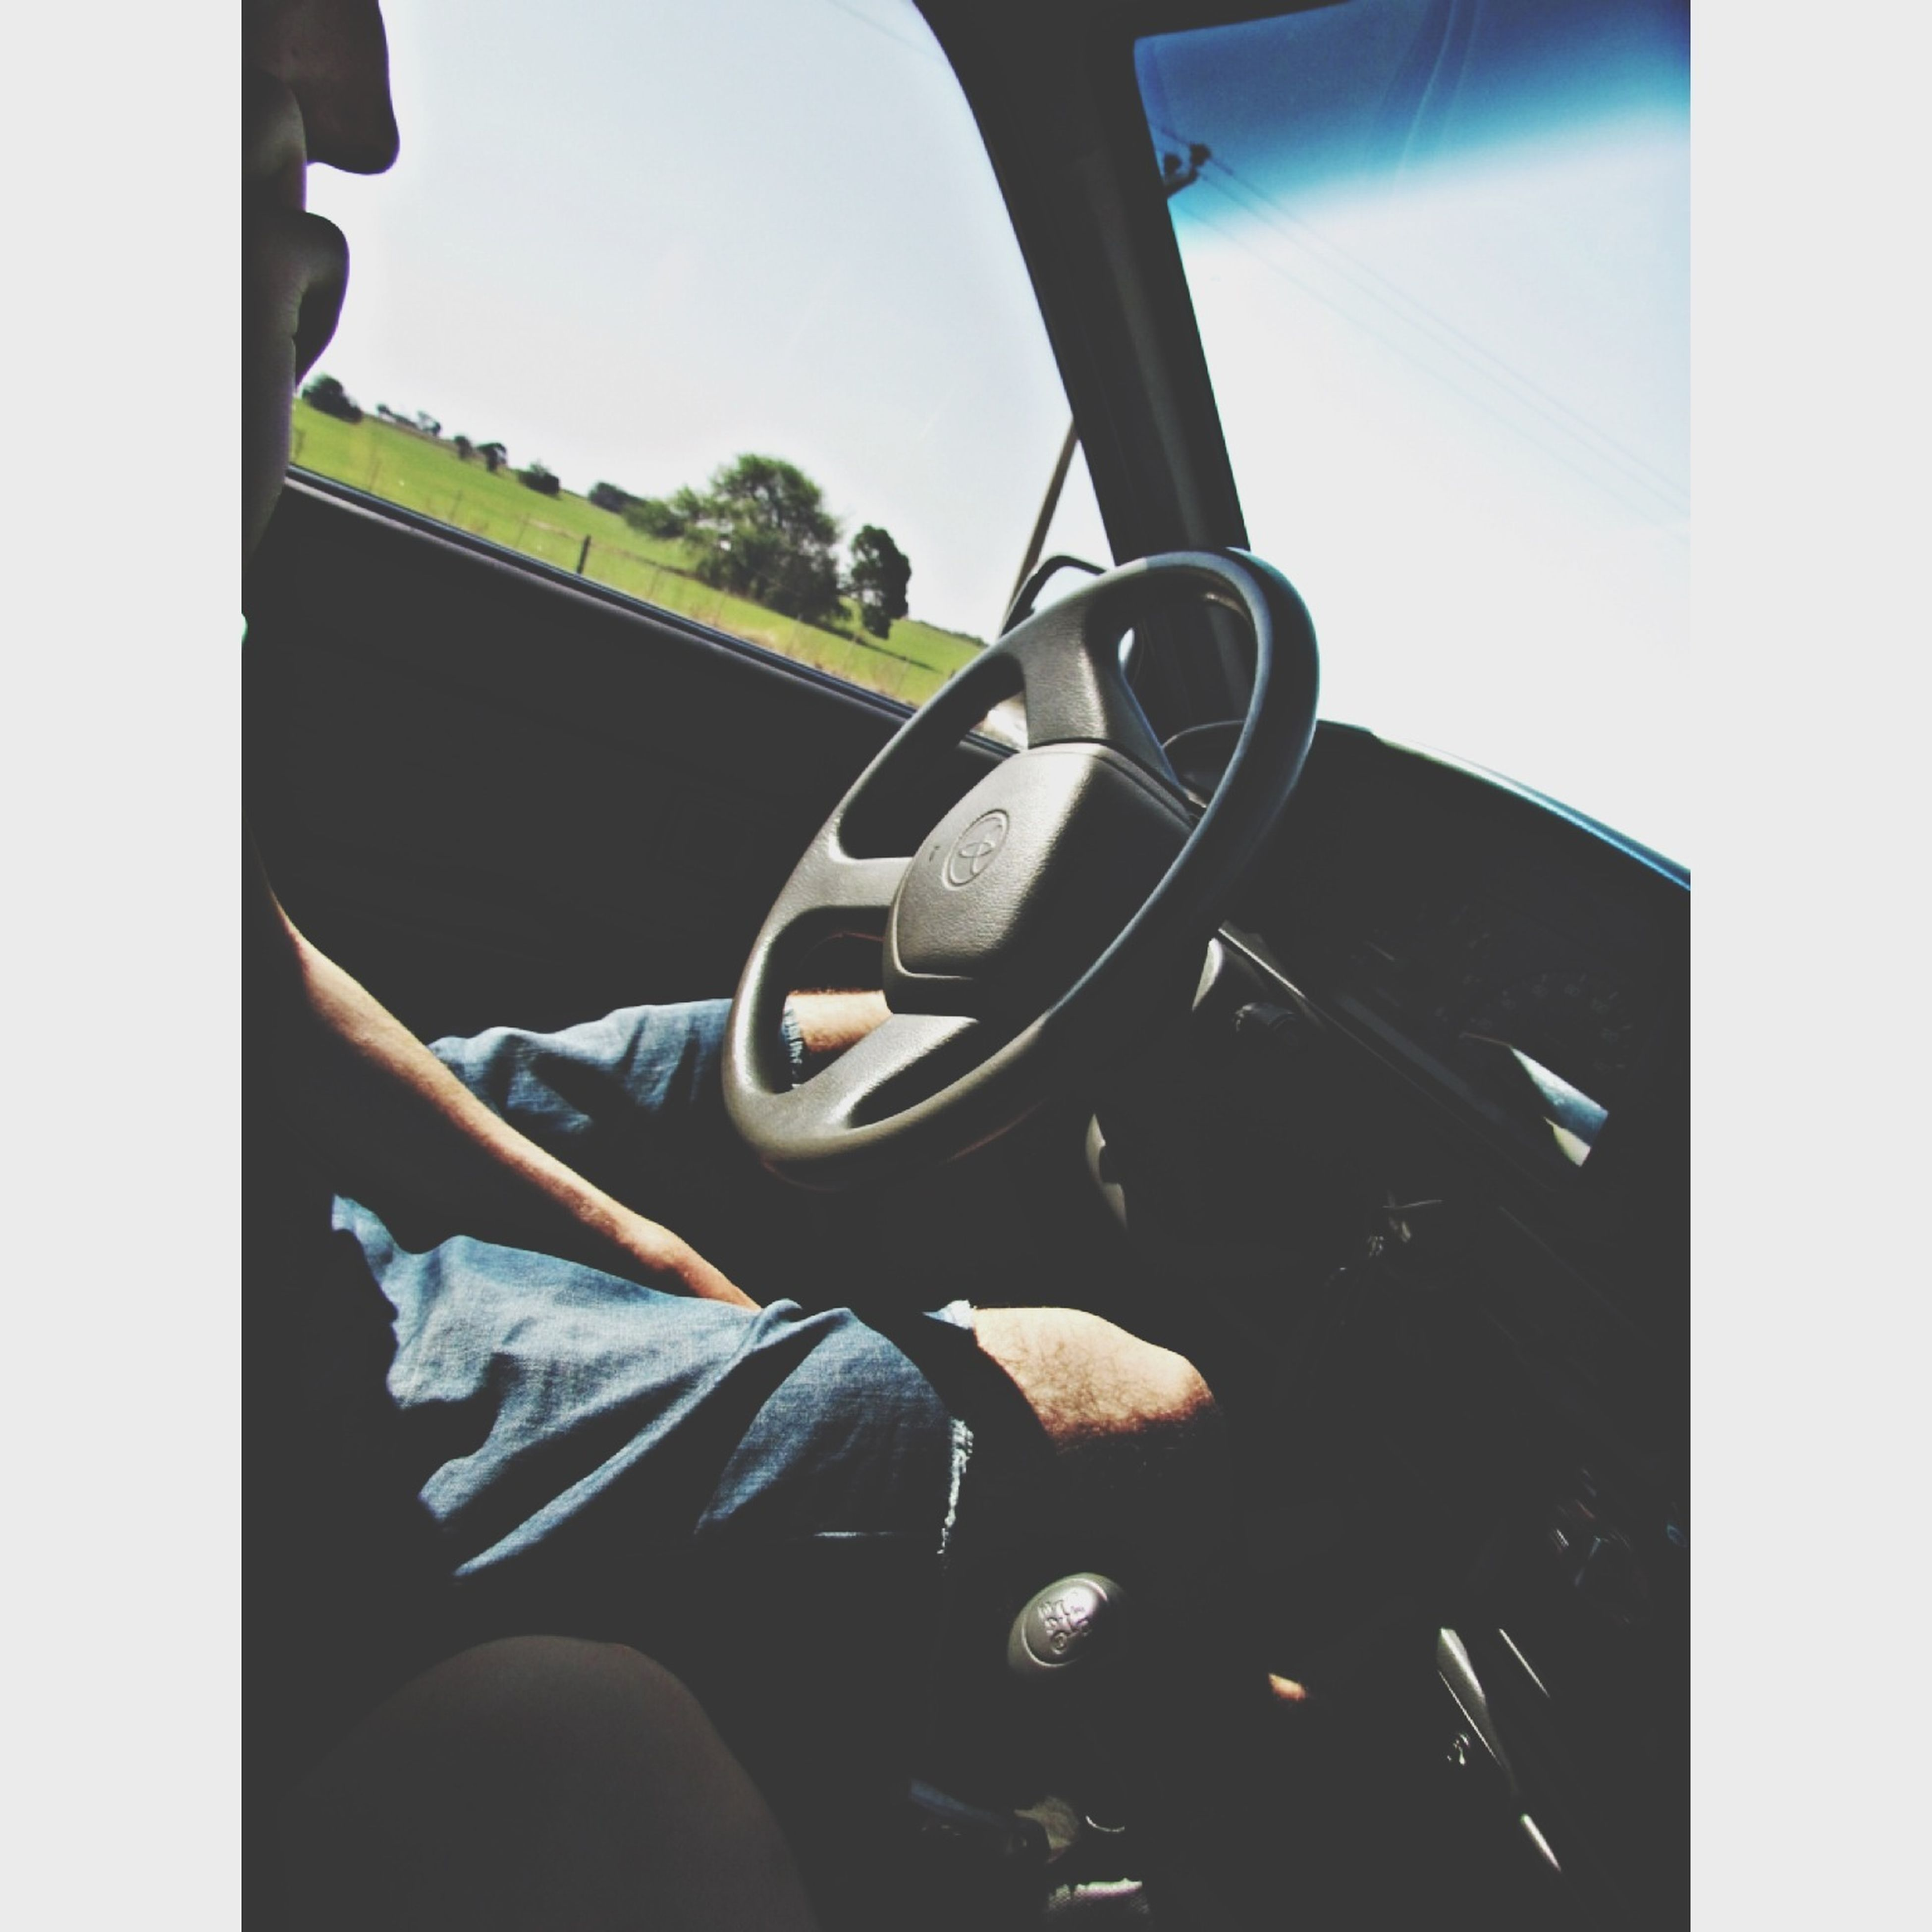 transportation, mode of transport, land vehicle, transfer print, lifestyles, auto post production filter, leisure activity, sunlight, men, day, car, sitting, window, indoors, technology, part of, holding, vehicle interior